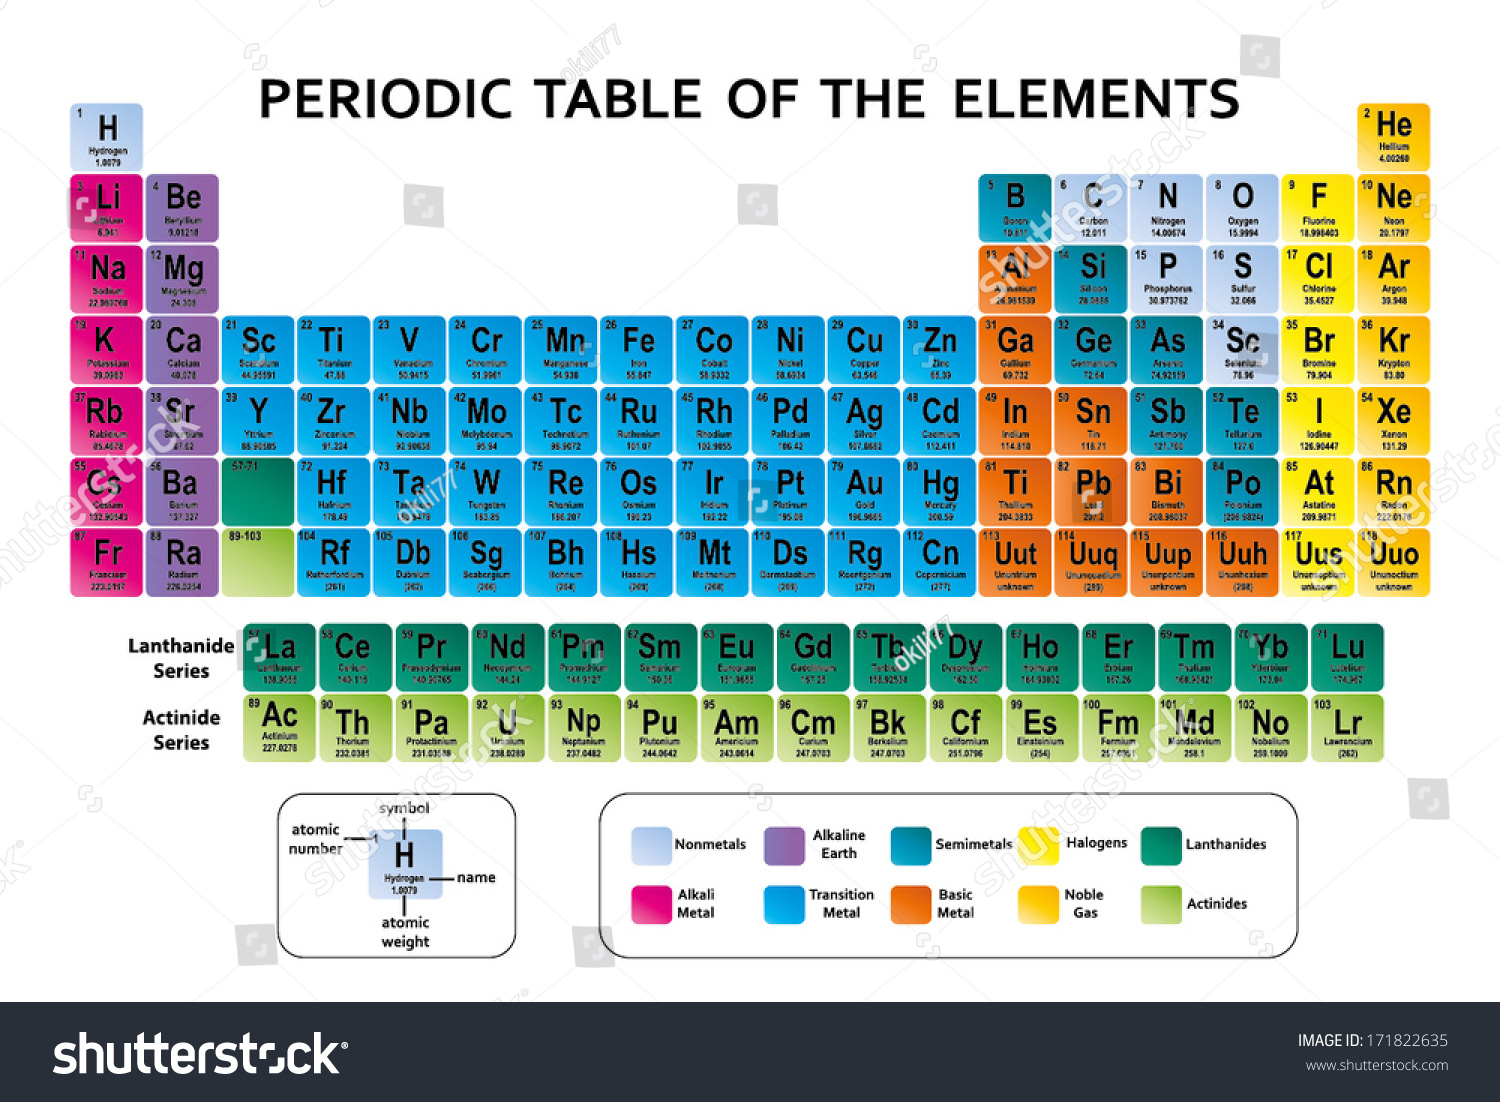 Periodic table elements vector stock vector 171822635 shutterstock periodic table of the elements vector gamestrikefo Gallery